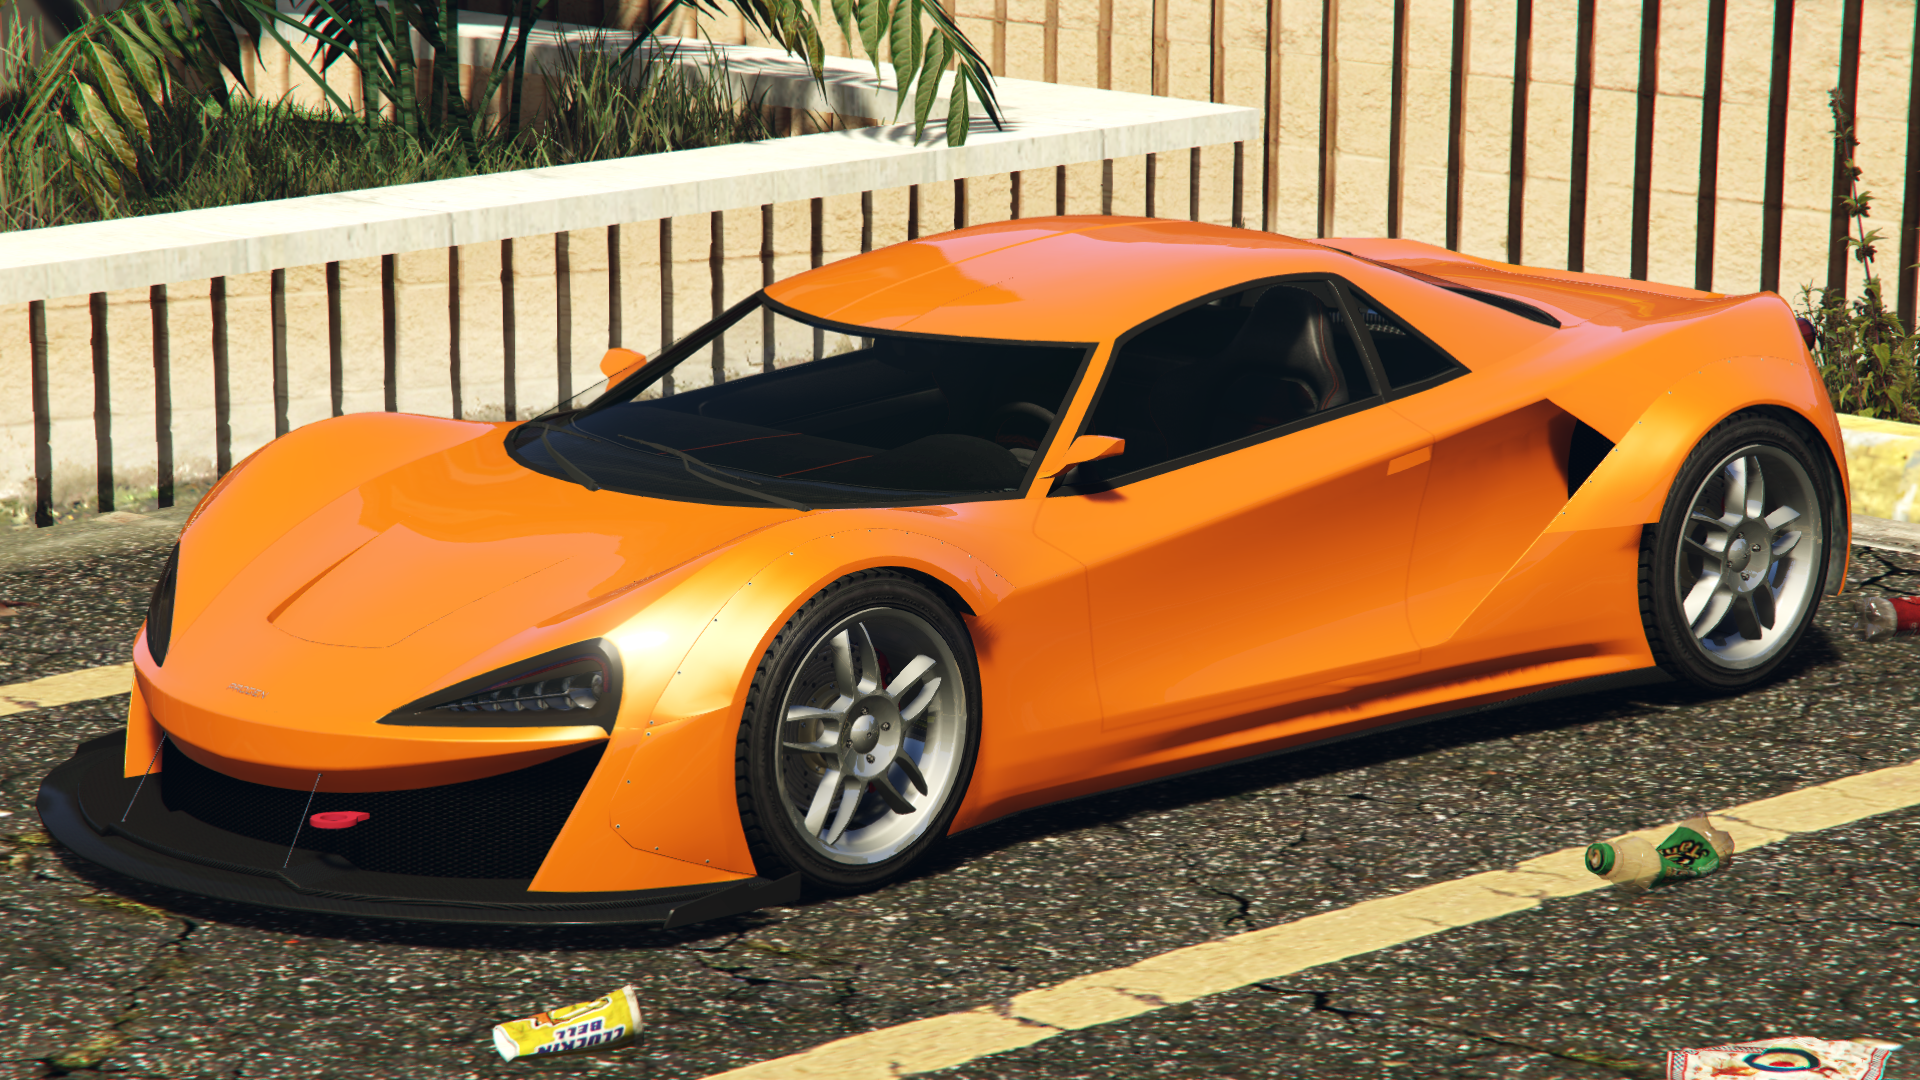 Itali GTB Custom | GTA Wiki | FANDOM powered by Wikia